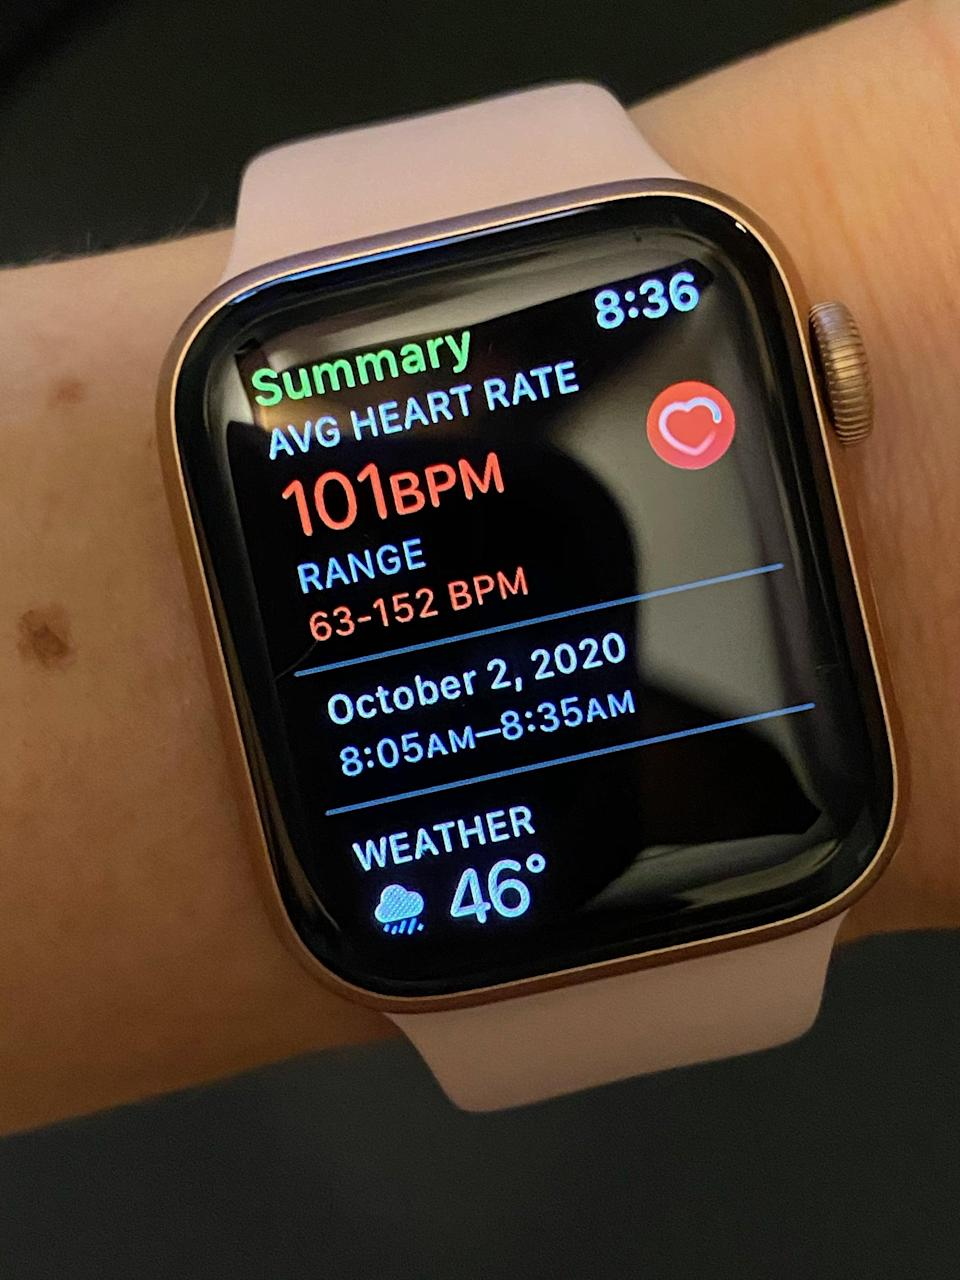 <p>If you continue scrolling down, you'll see the heart-rate results. I like how it shows you the low to high range of your beats per minute (BPM). My range was 63 to 152 BPM, with a 101 BPM average.</p>